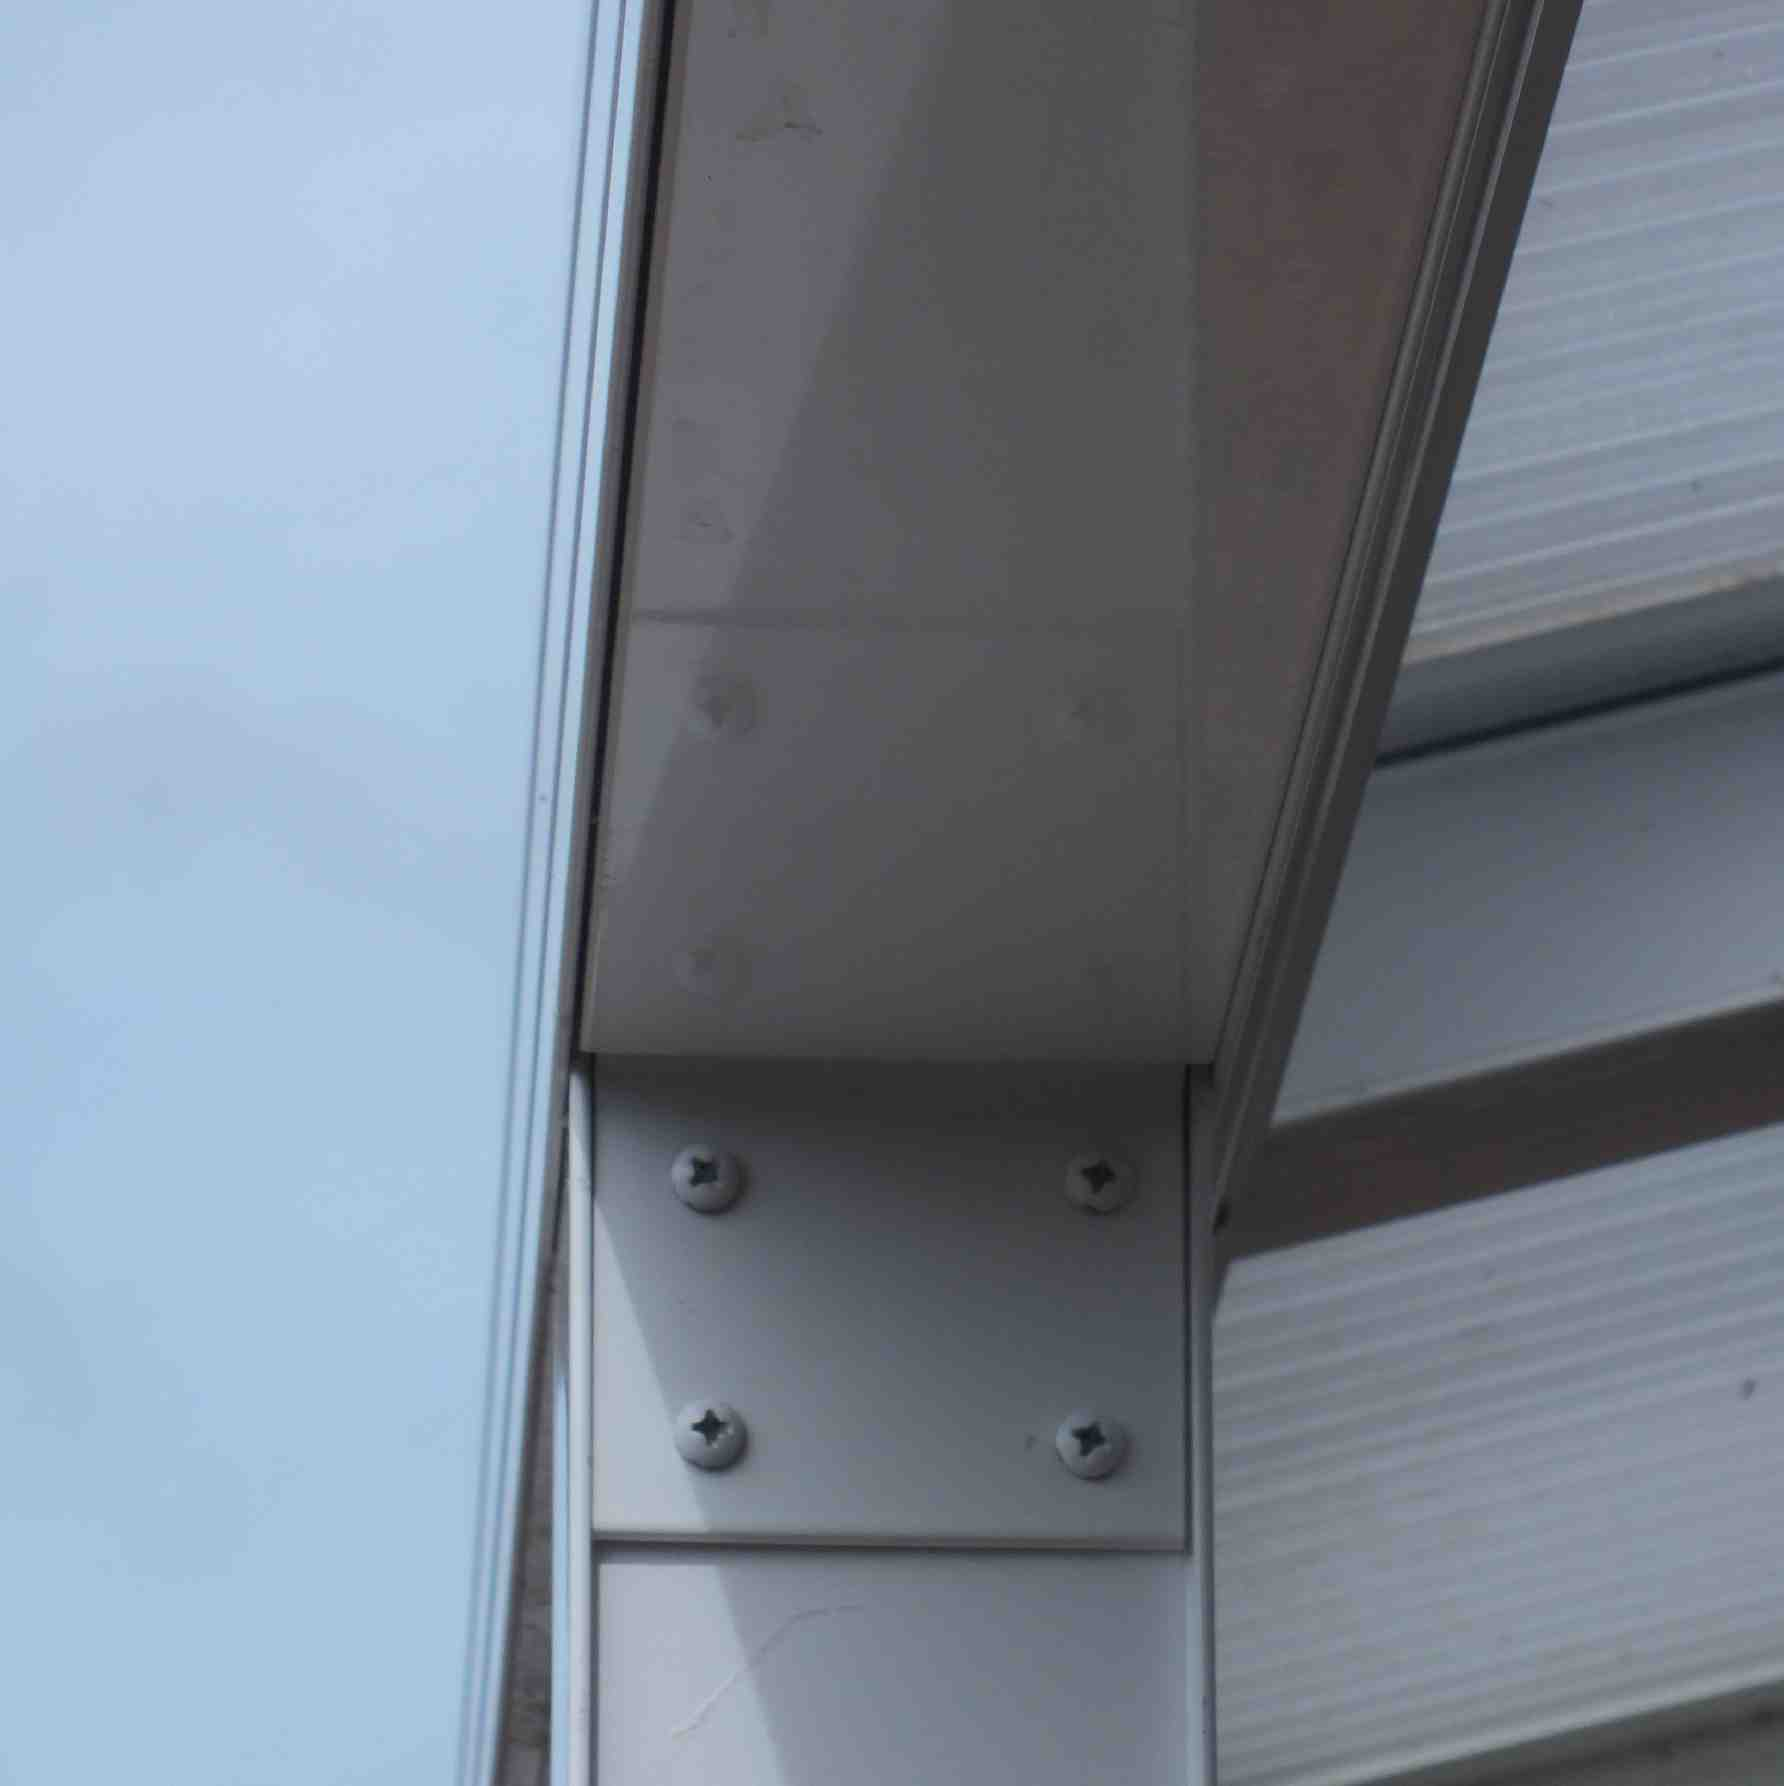 Affordable Omega Verandah with 16mm Polycarbonate Glazing - 7.0m (W) x 4.0m (P), (4) Supporting Posts